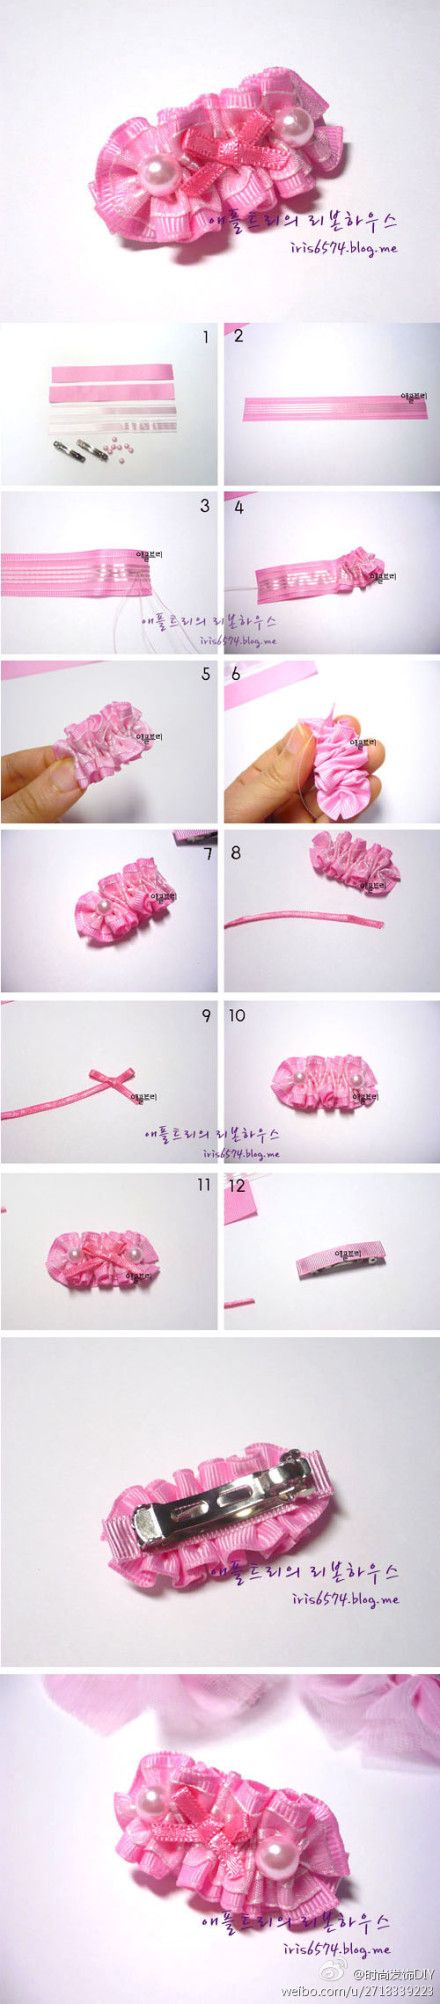 Will figure this out and make these for kiddos